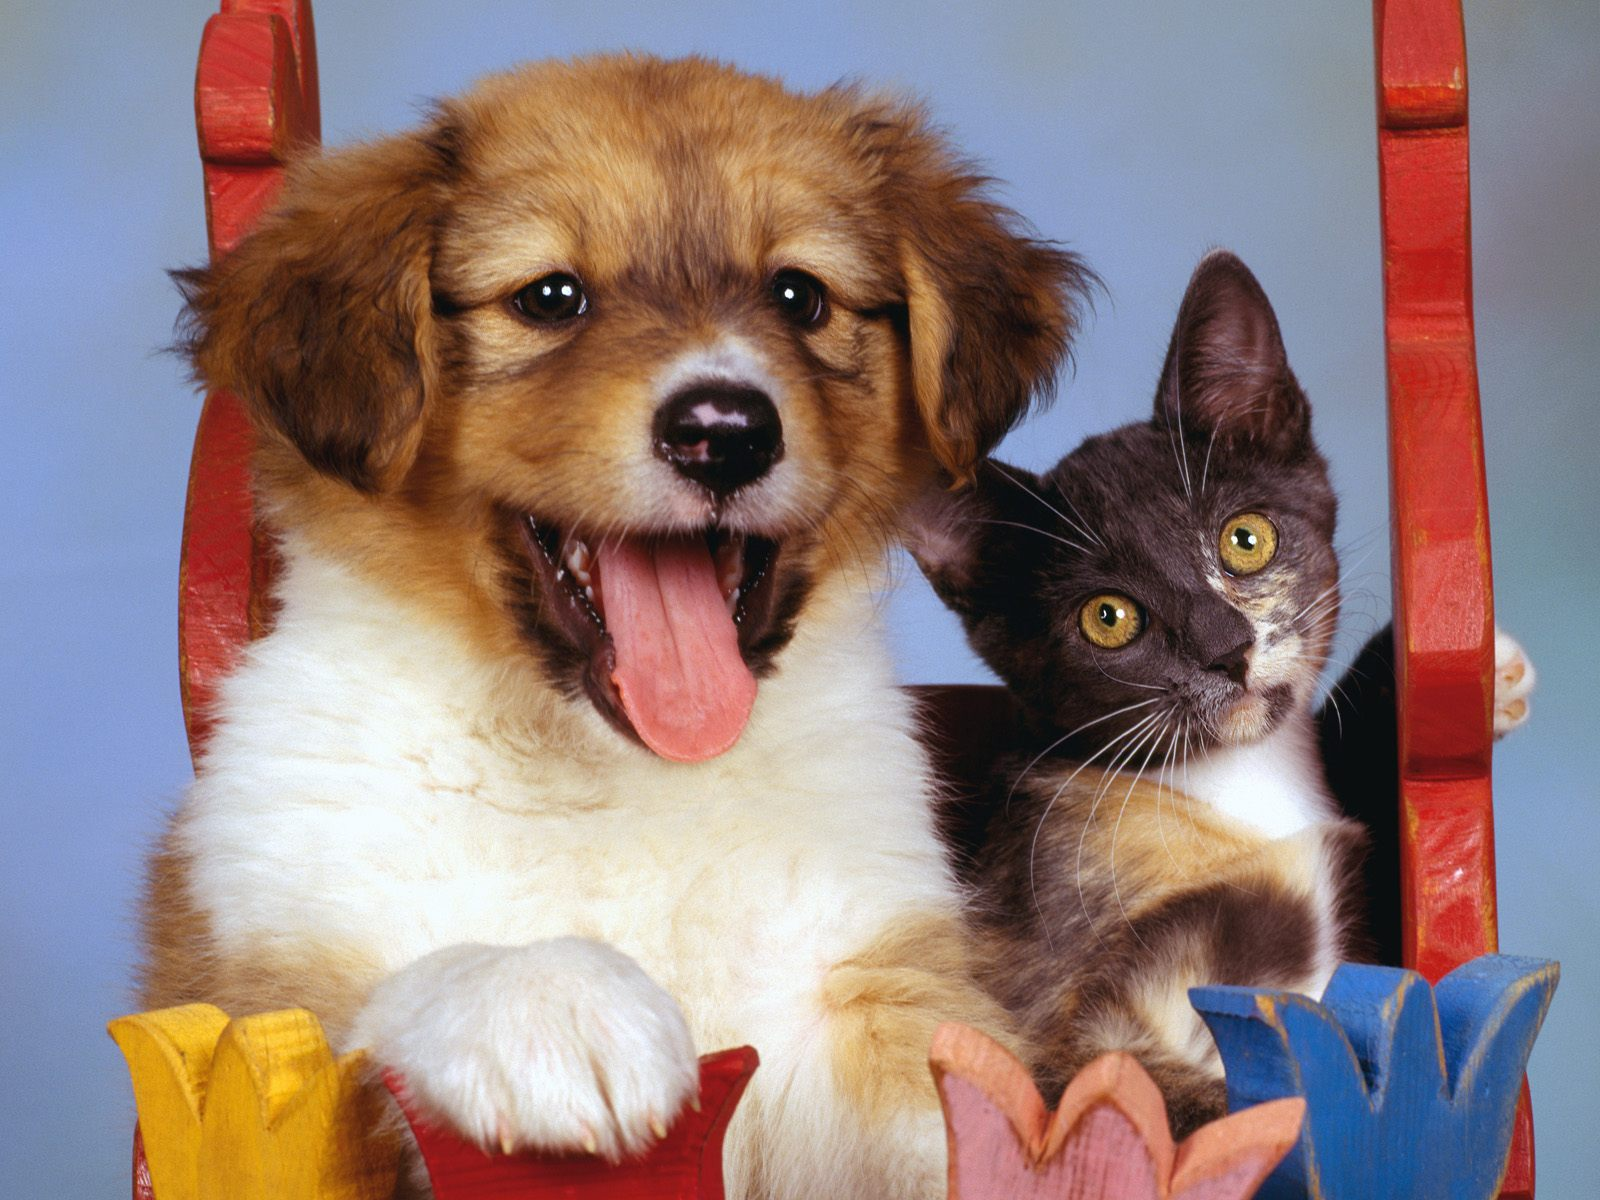 Get Dogs and Cats Backgrounds Wallpaper and make this wallpaper 1600x1200